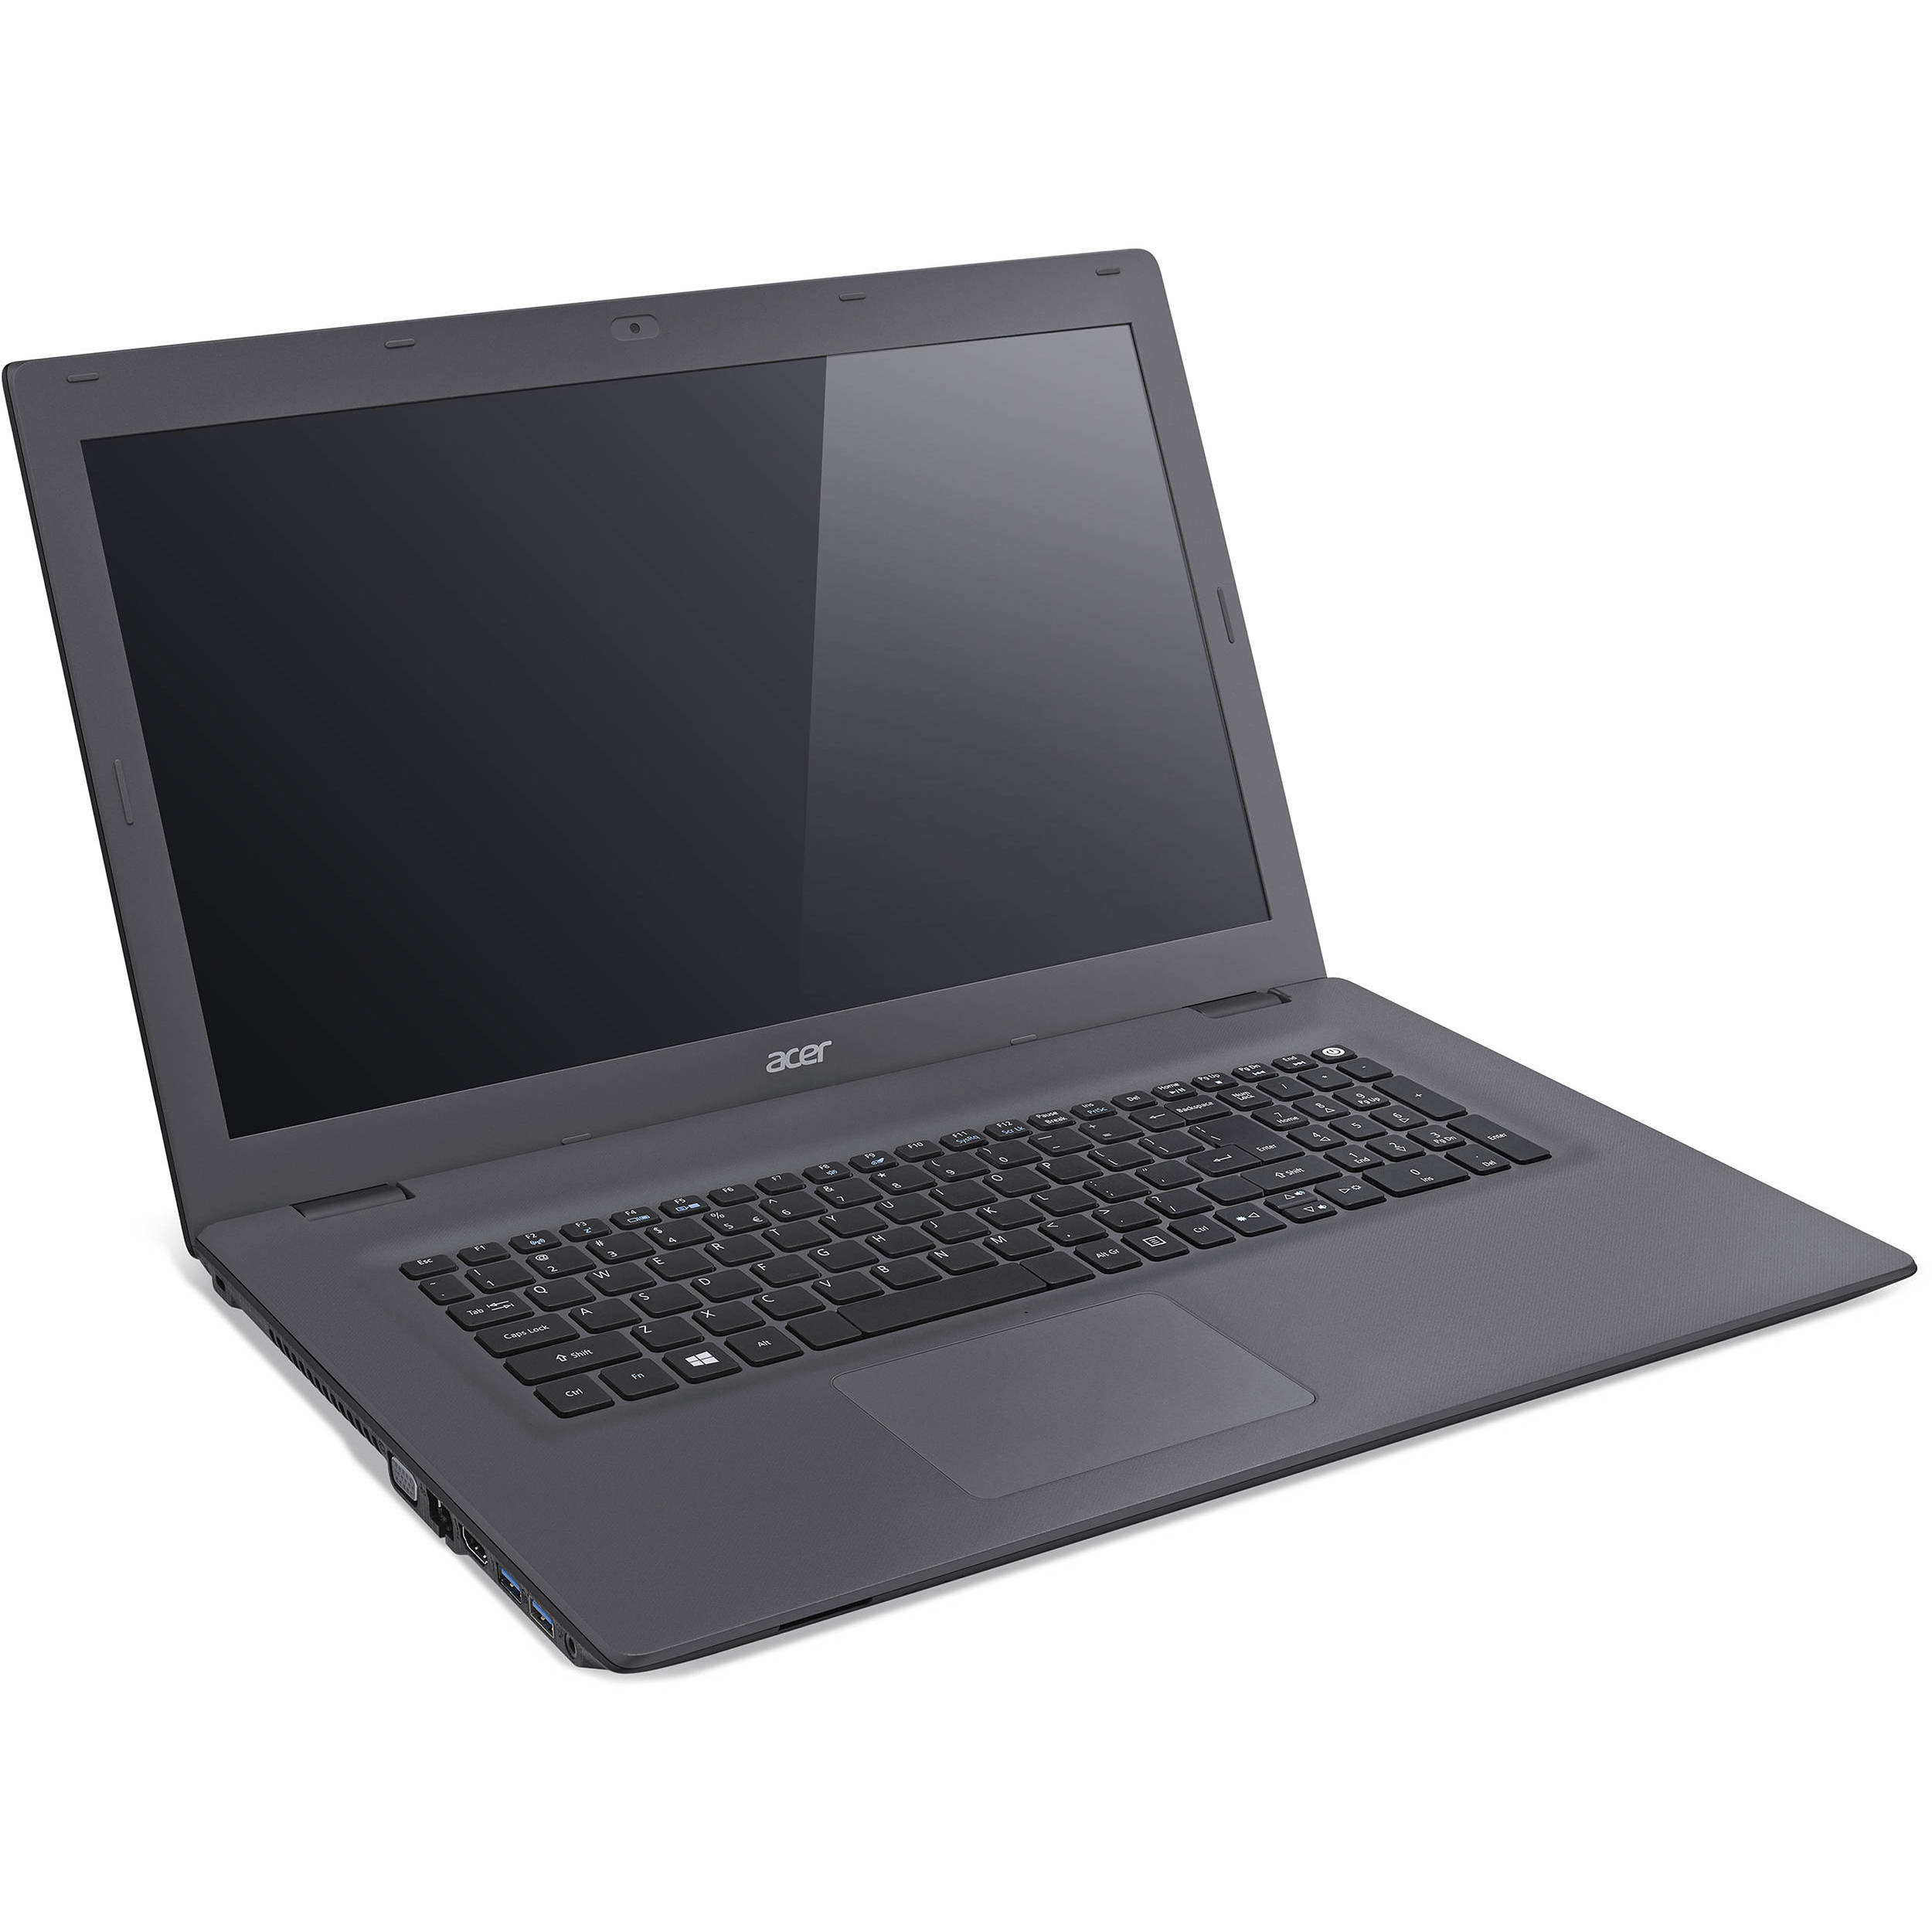 Acer Aspire E5-773G ELANTECH Touchpad Drivers Windows